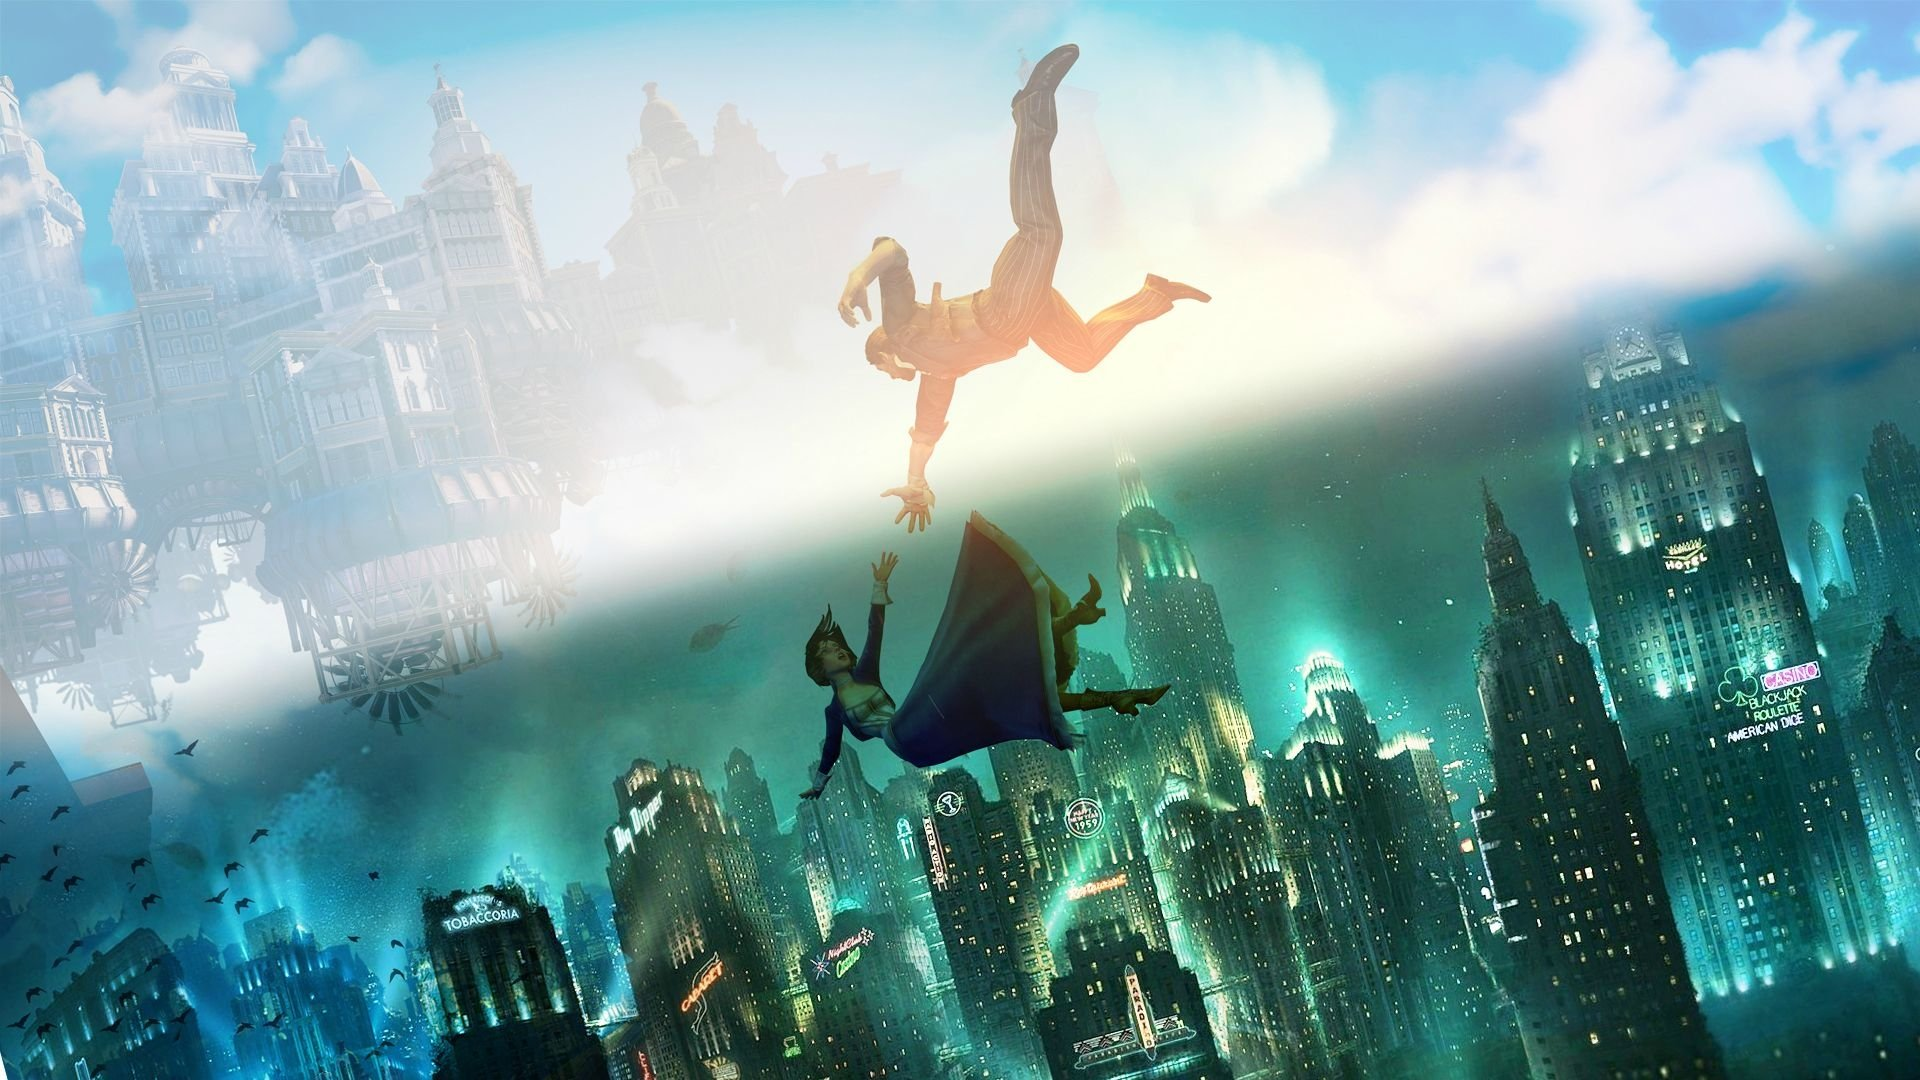 366 Bioshock HD Wallpapers